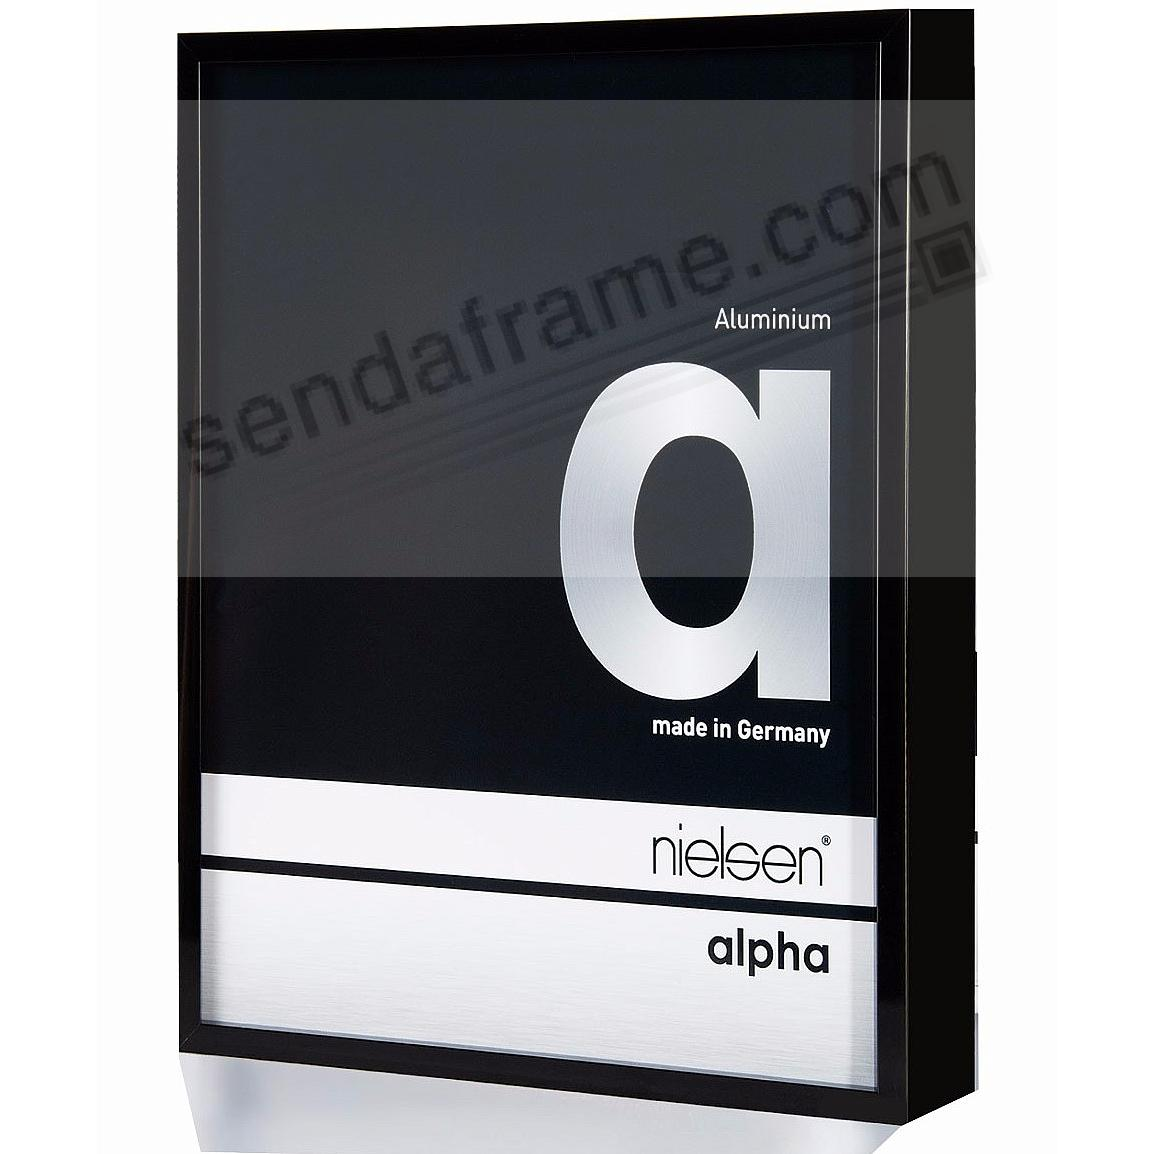 ALPHA Metallic Shiny-Black 5x7 frame by Nielsen®